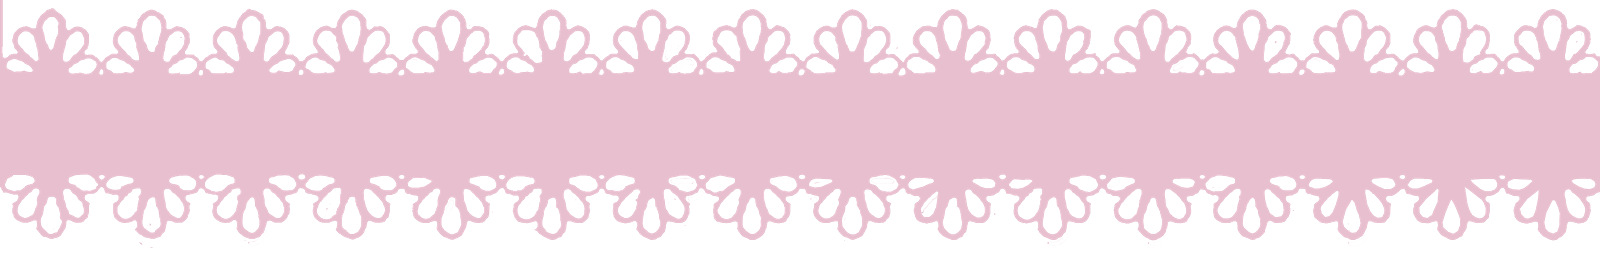 Backgrounds lilies and borders. Paris clipart pink